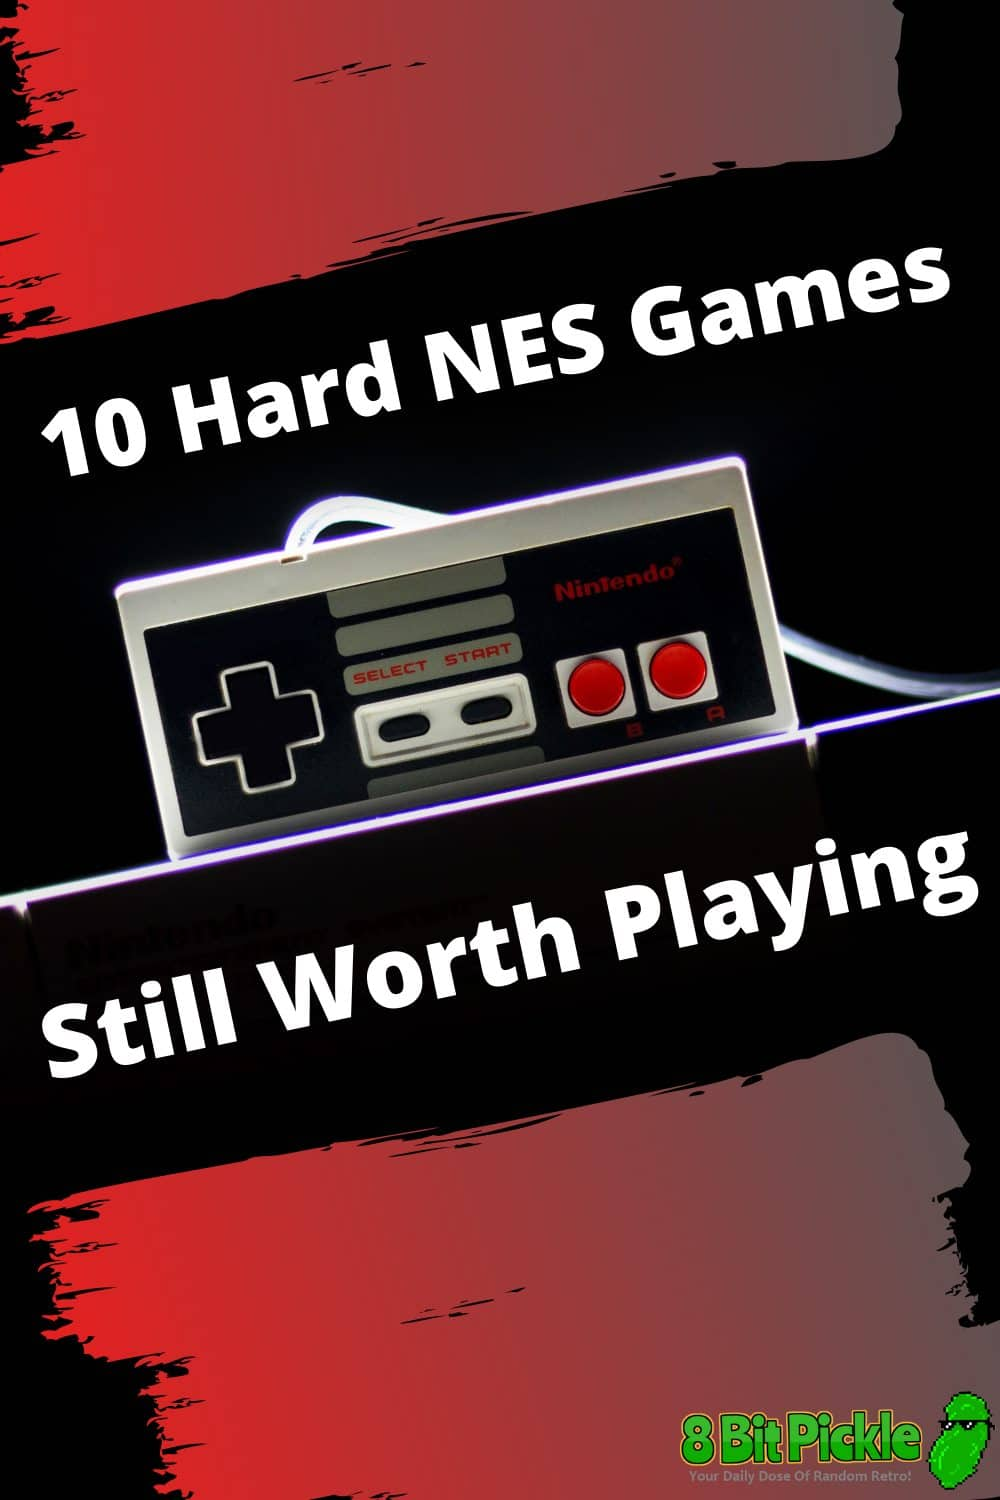 Tough NES Games That Are Still Fun To Play